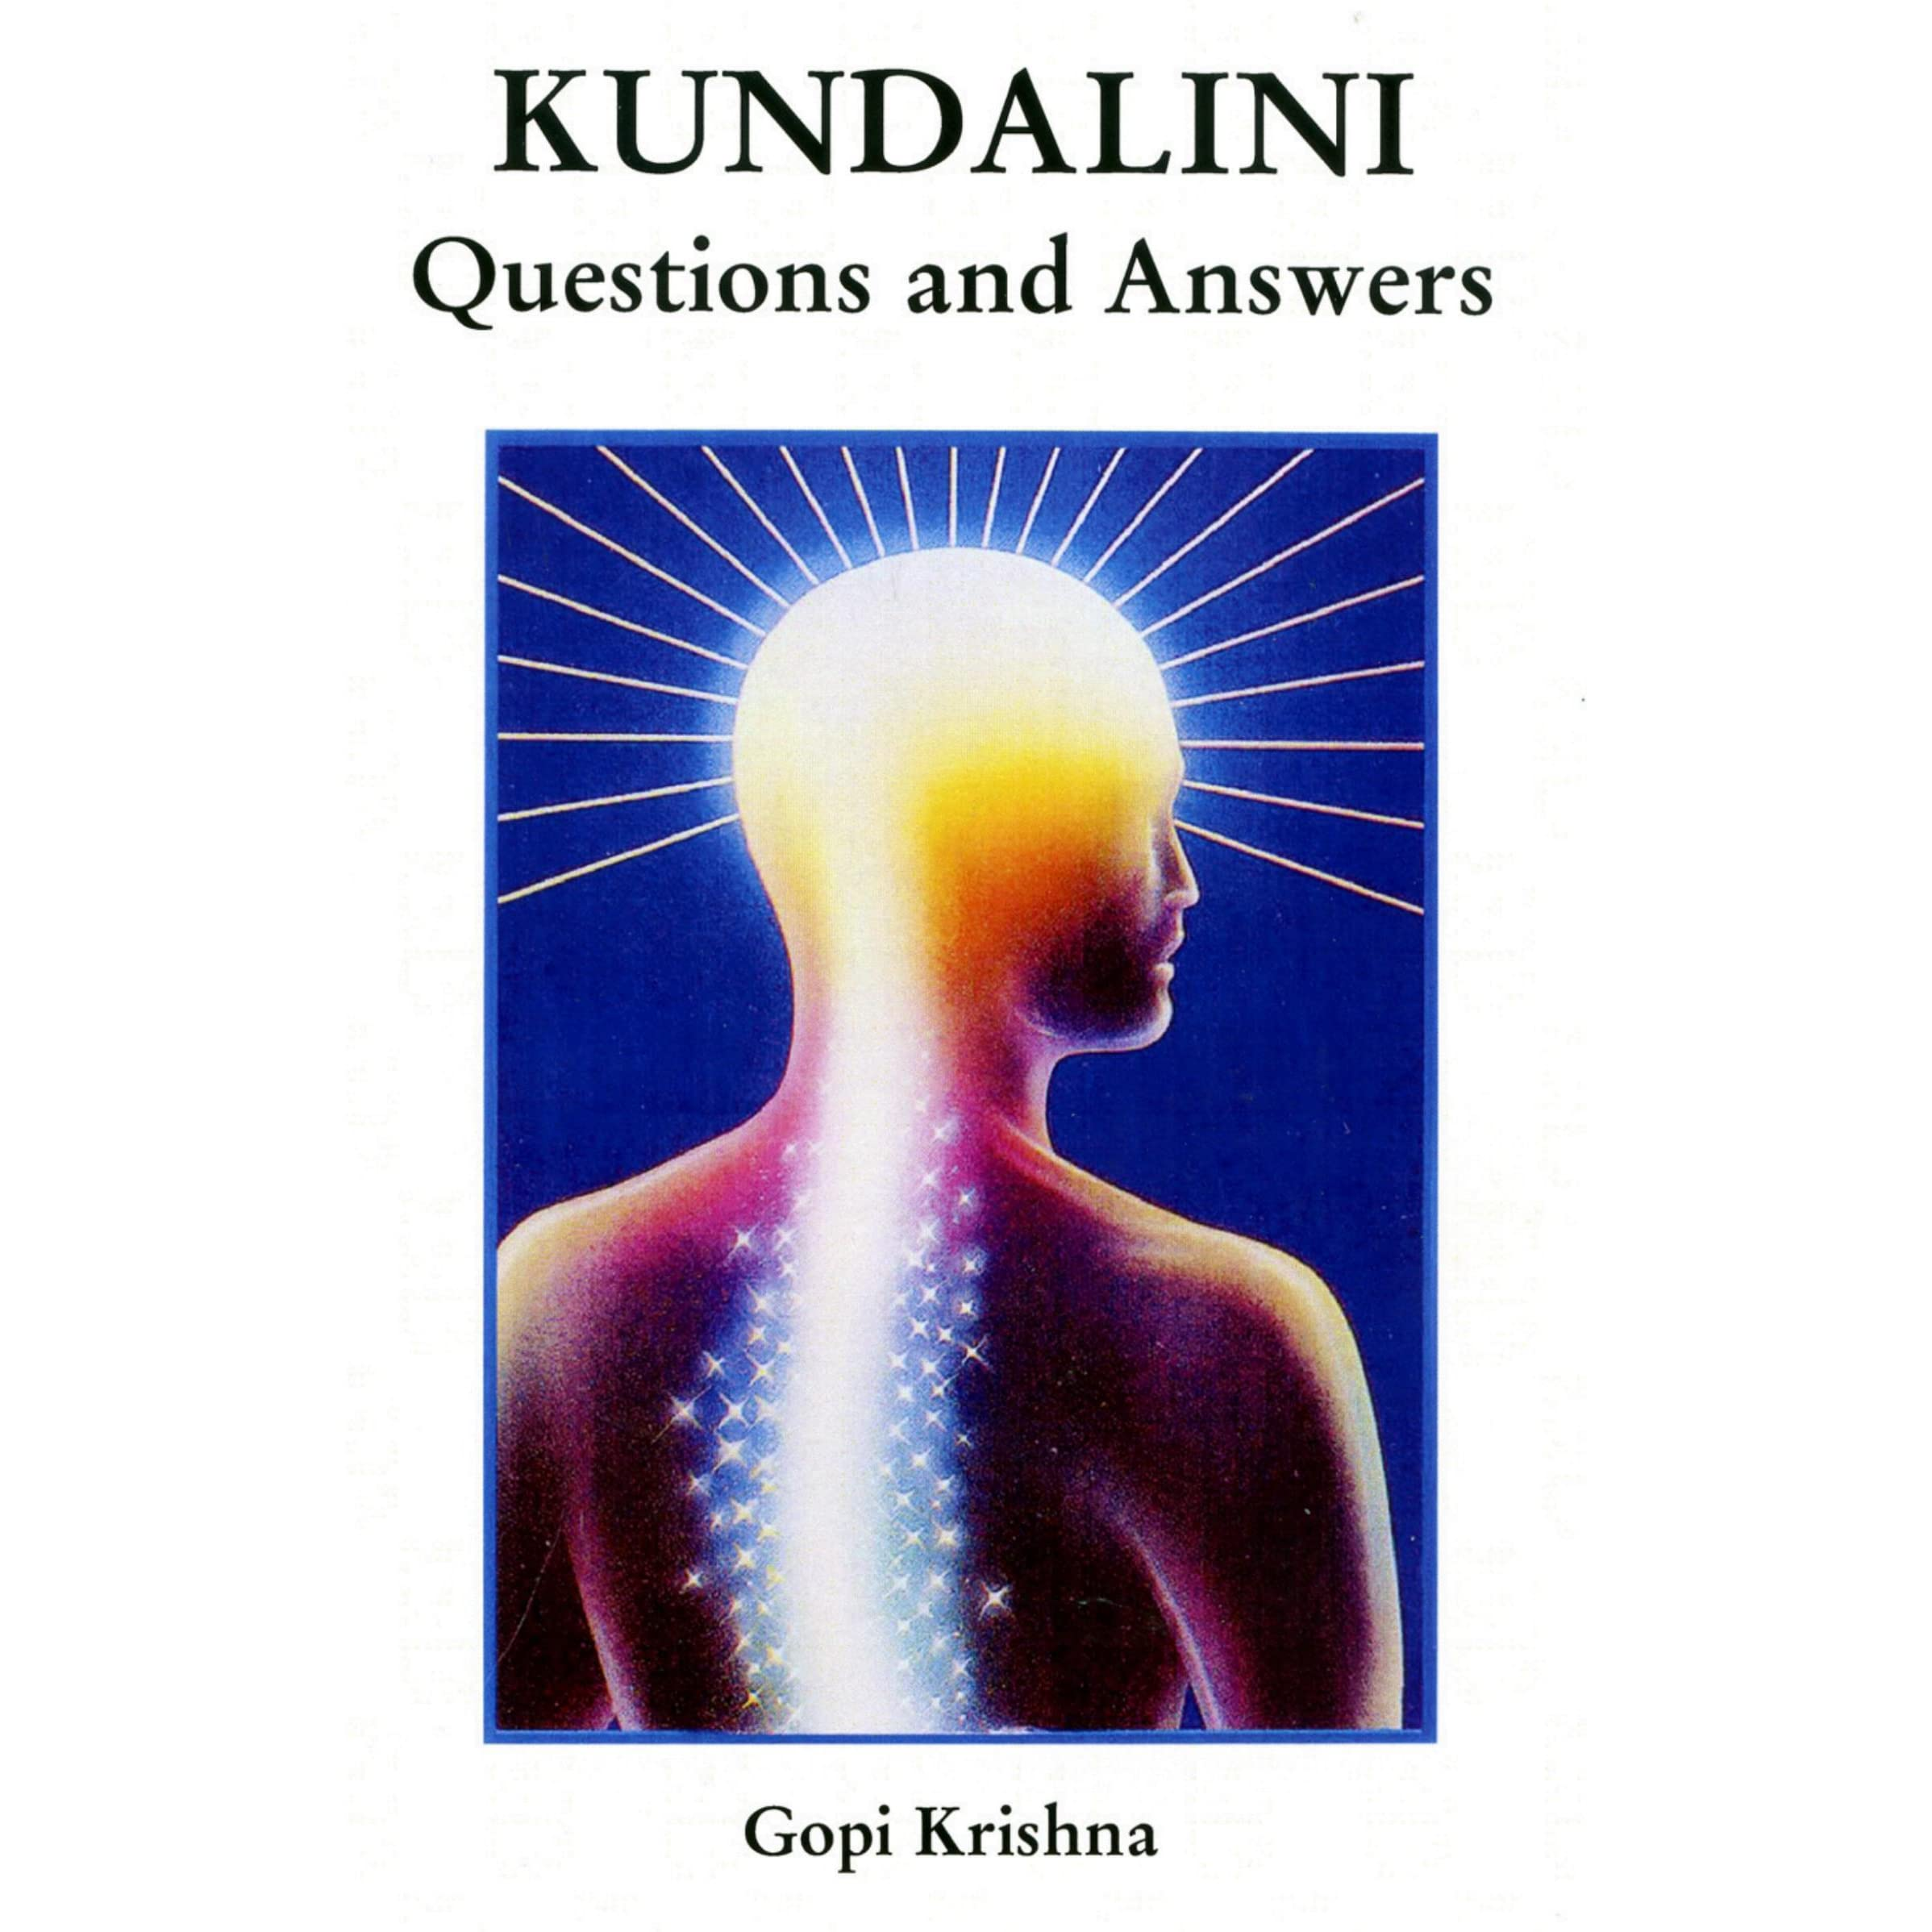 Kundalini Questions And Answers By Gopi Krishna